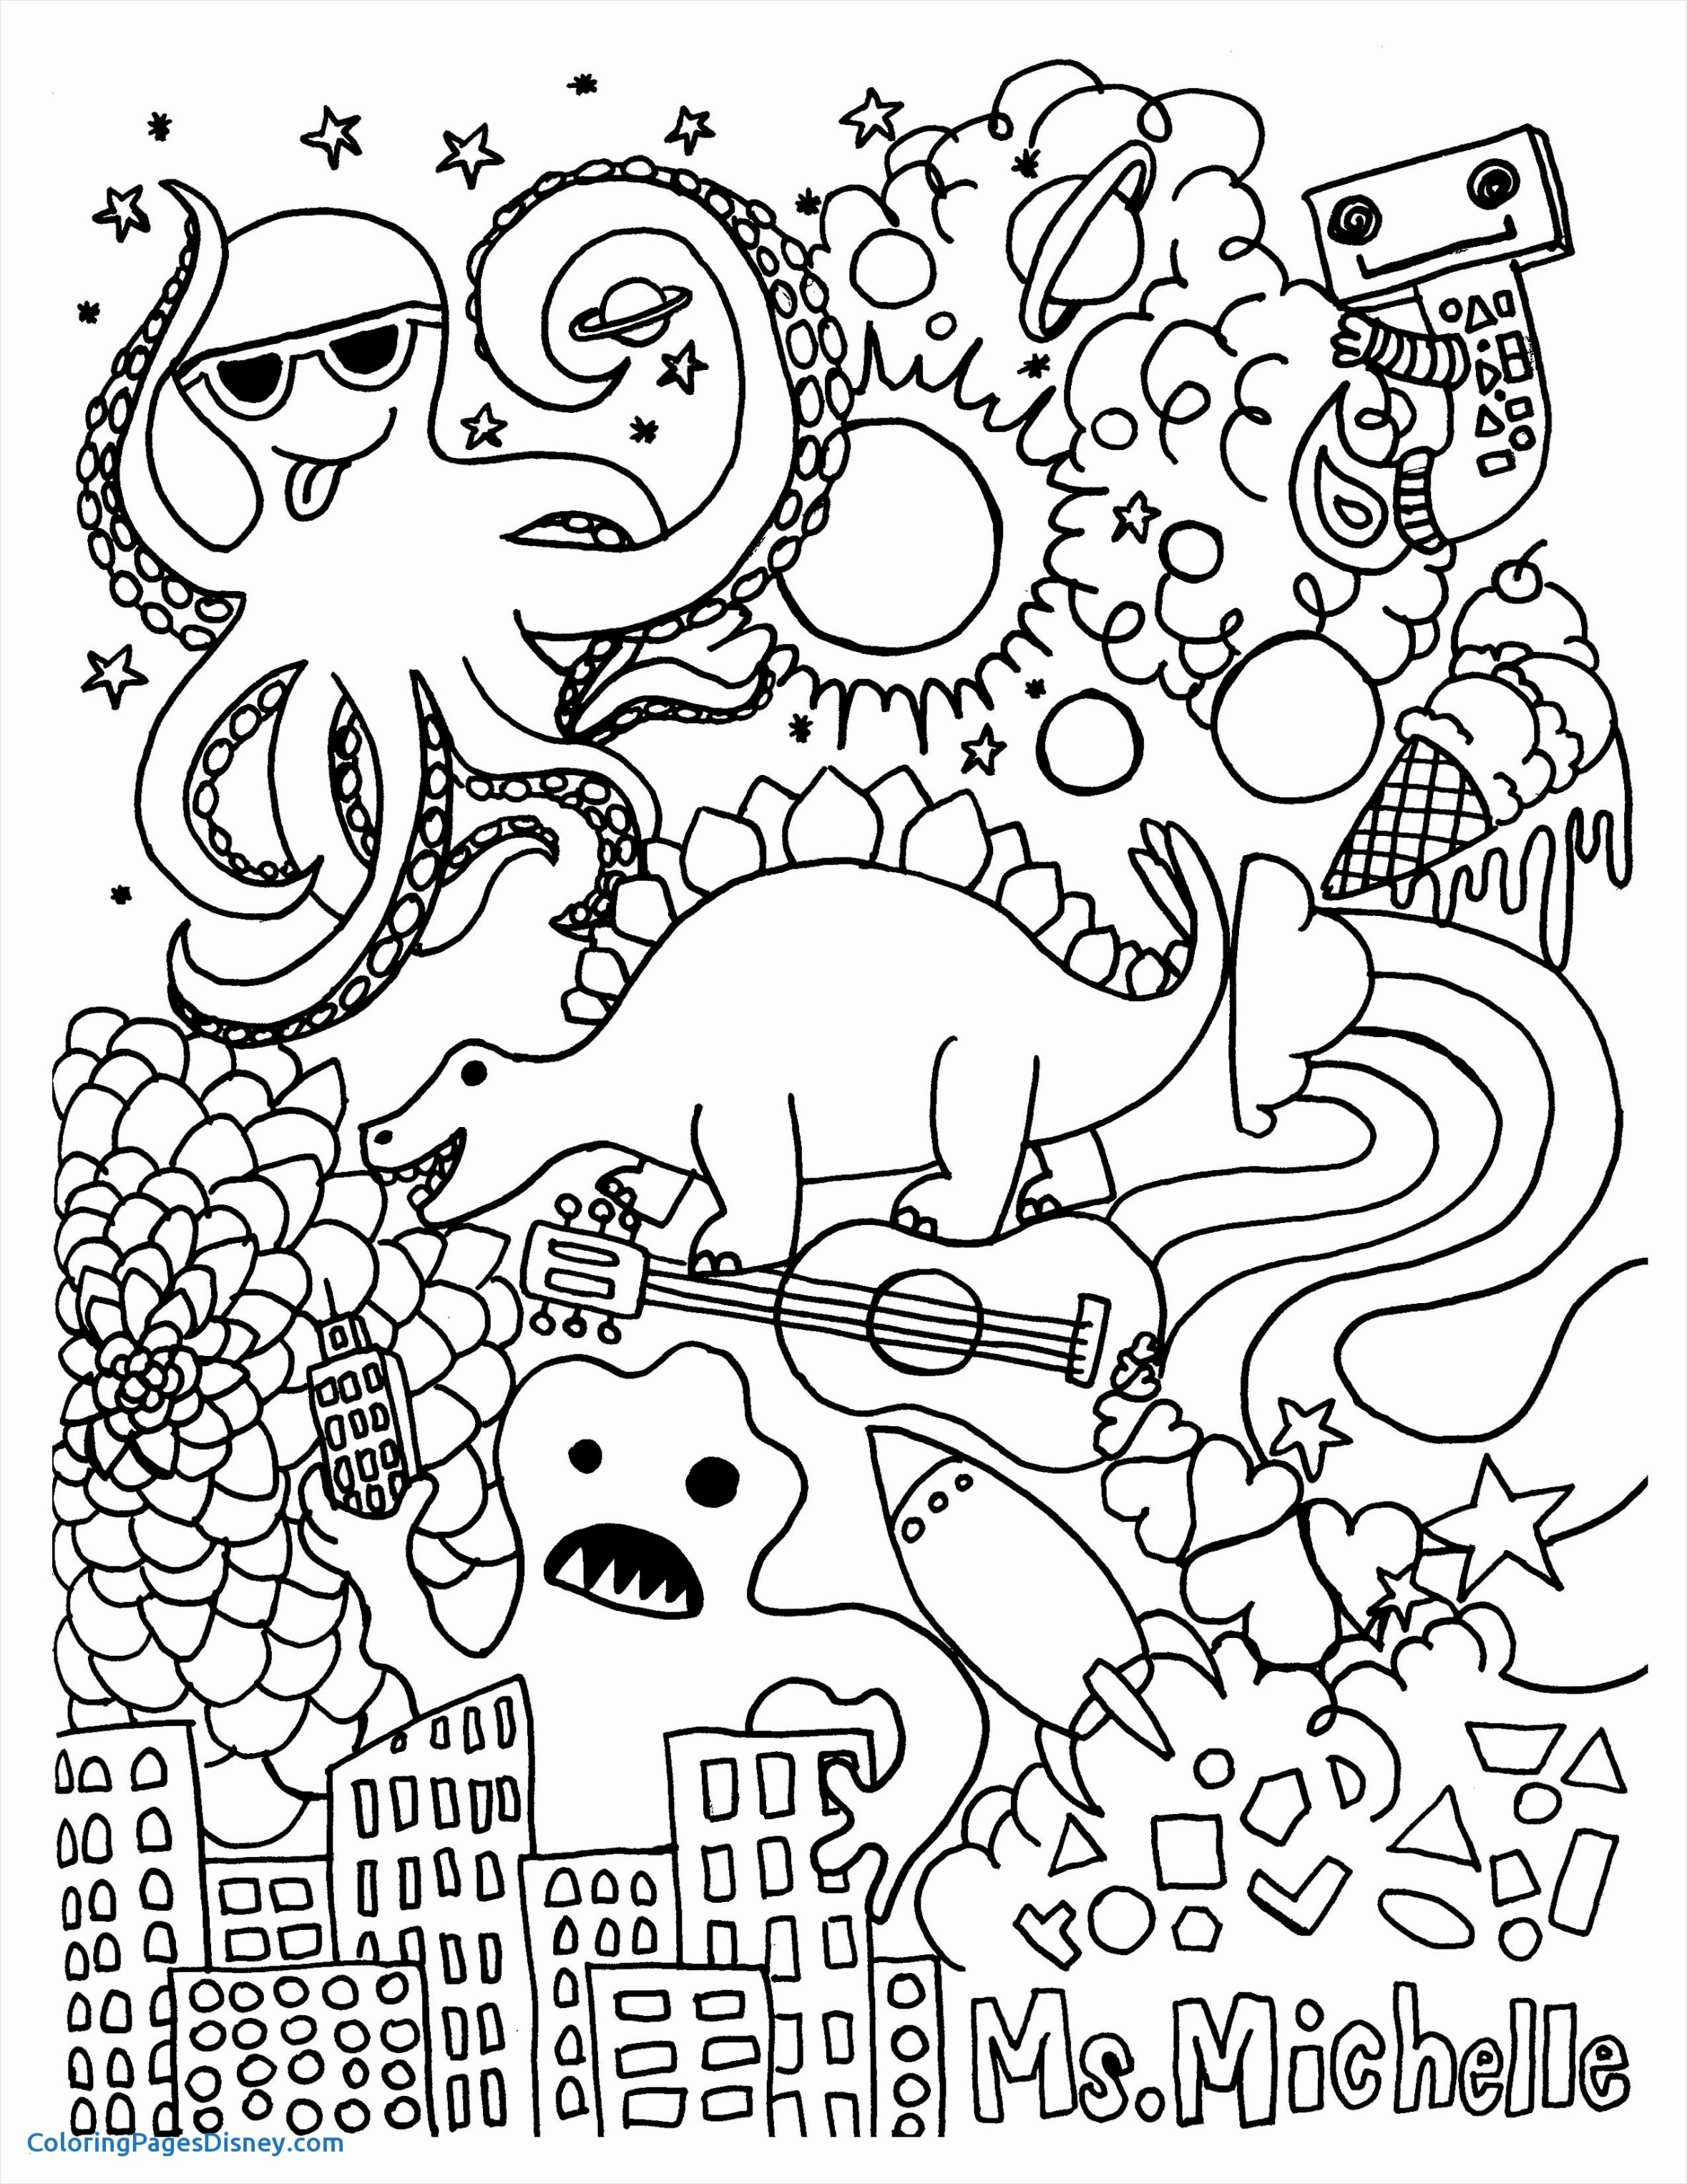 Hispanic Heritage Coloring Pages  Gallery 18a - Free For kids